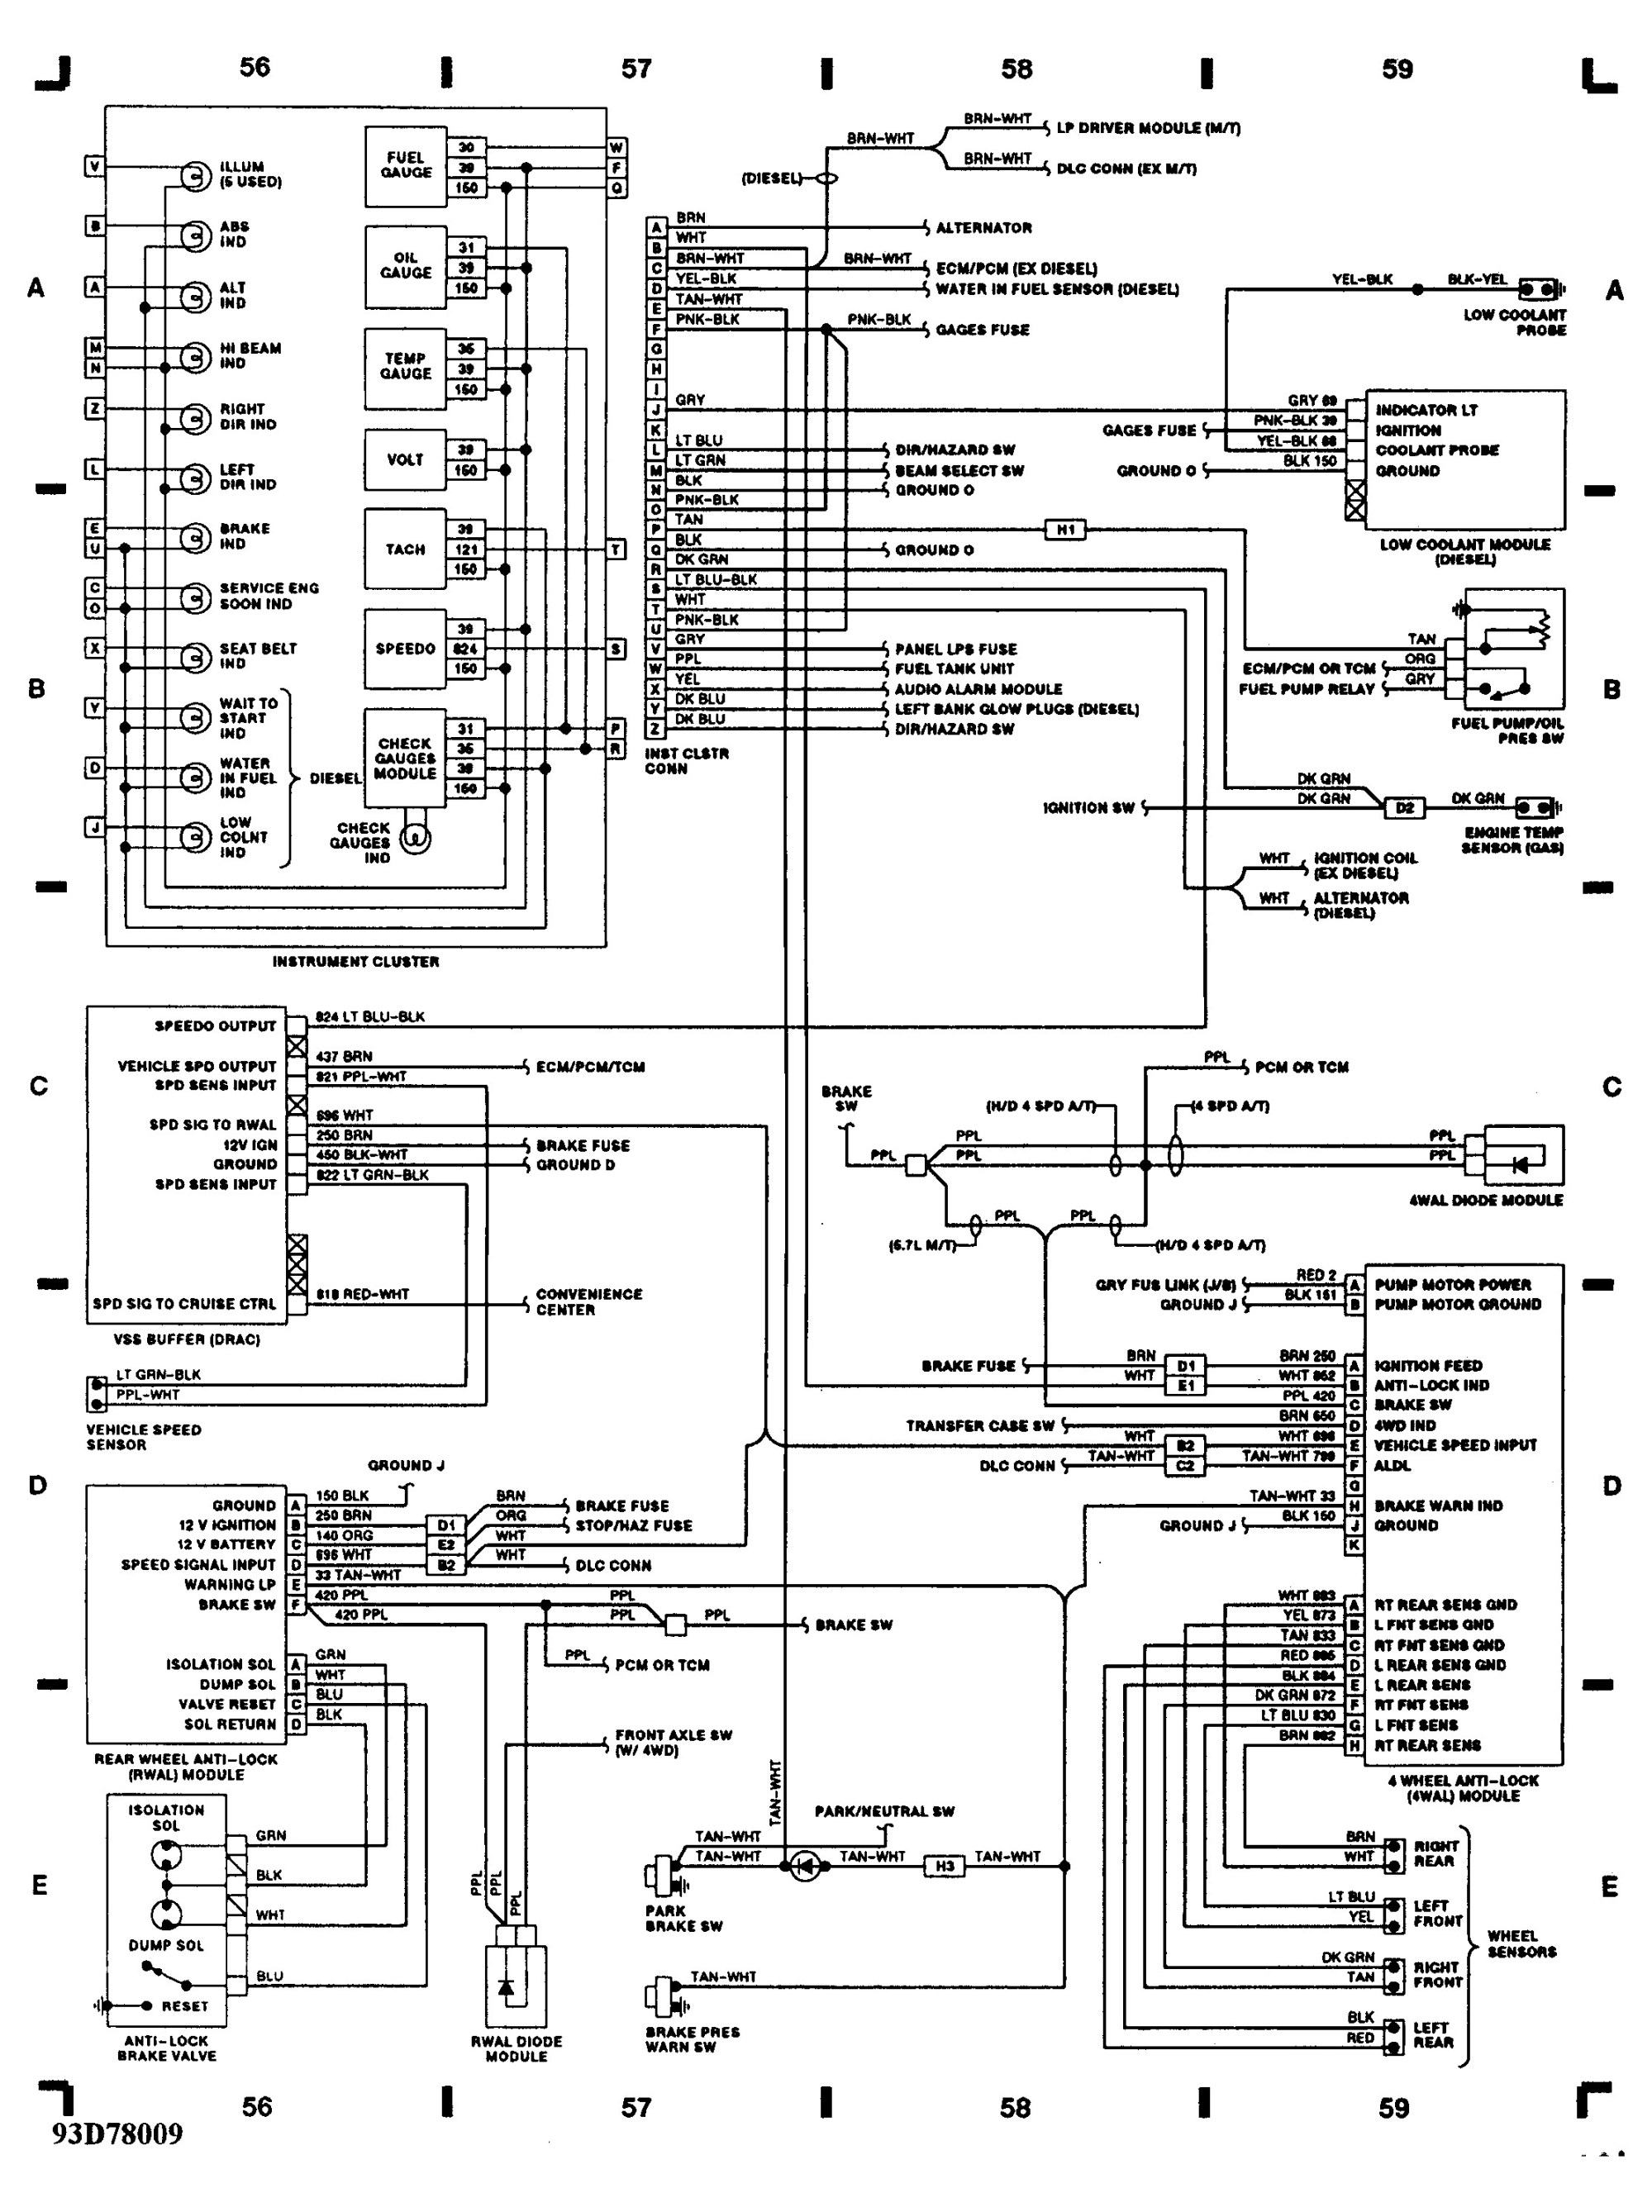 hight resolution of cat 3126 ecm wiring diagram caterpillar d1256 wiring diagram wiring diagrams u2022 rh wiringdiagramblog today